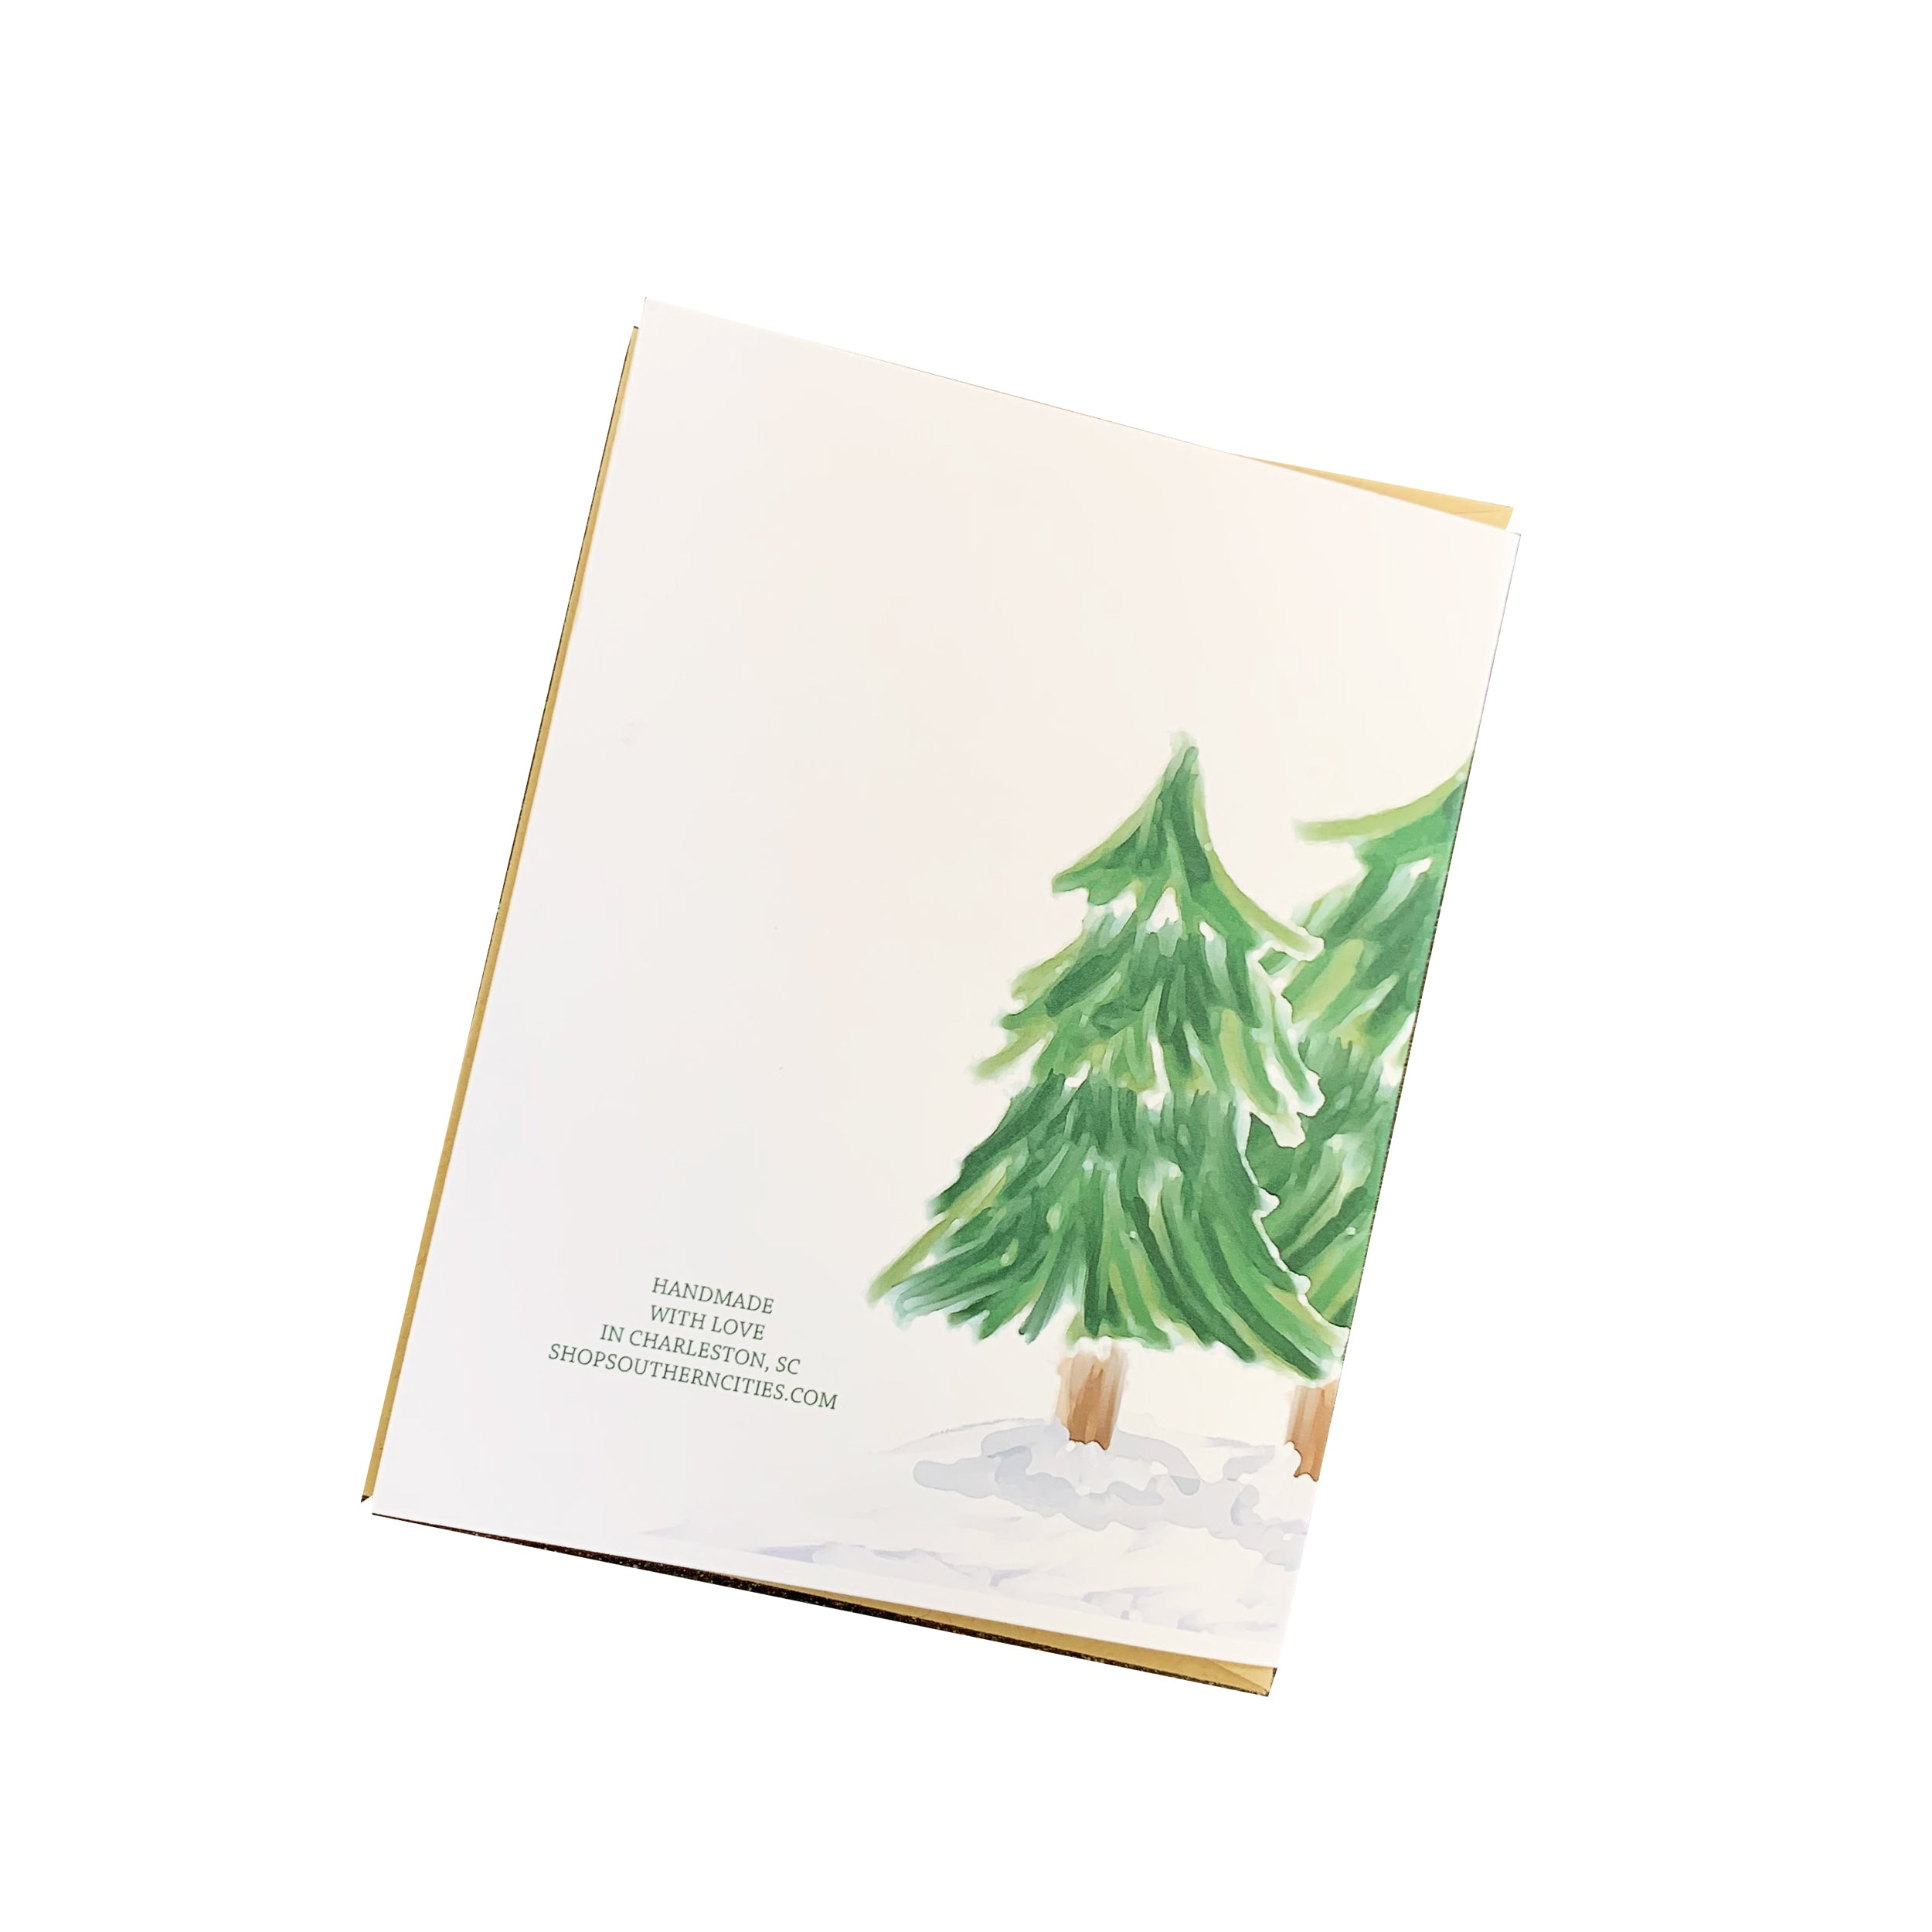 Watercolor Trees Christmas Card